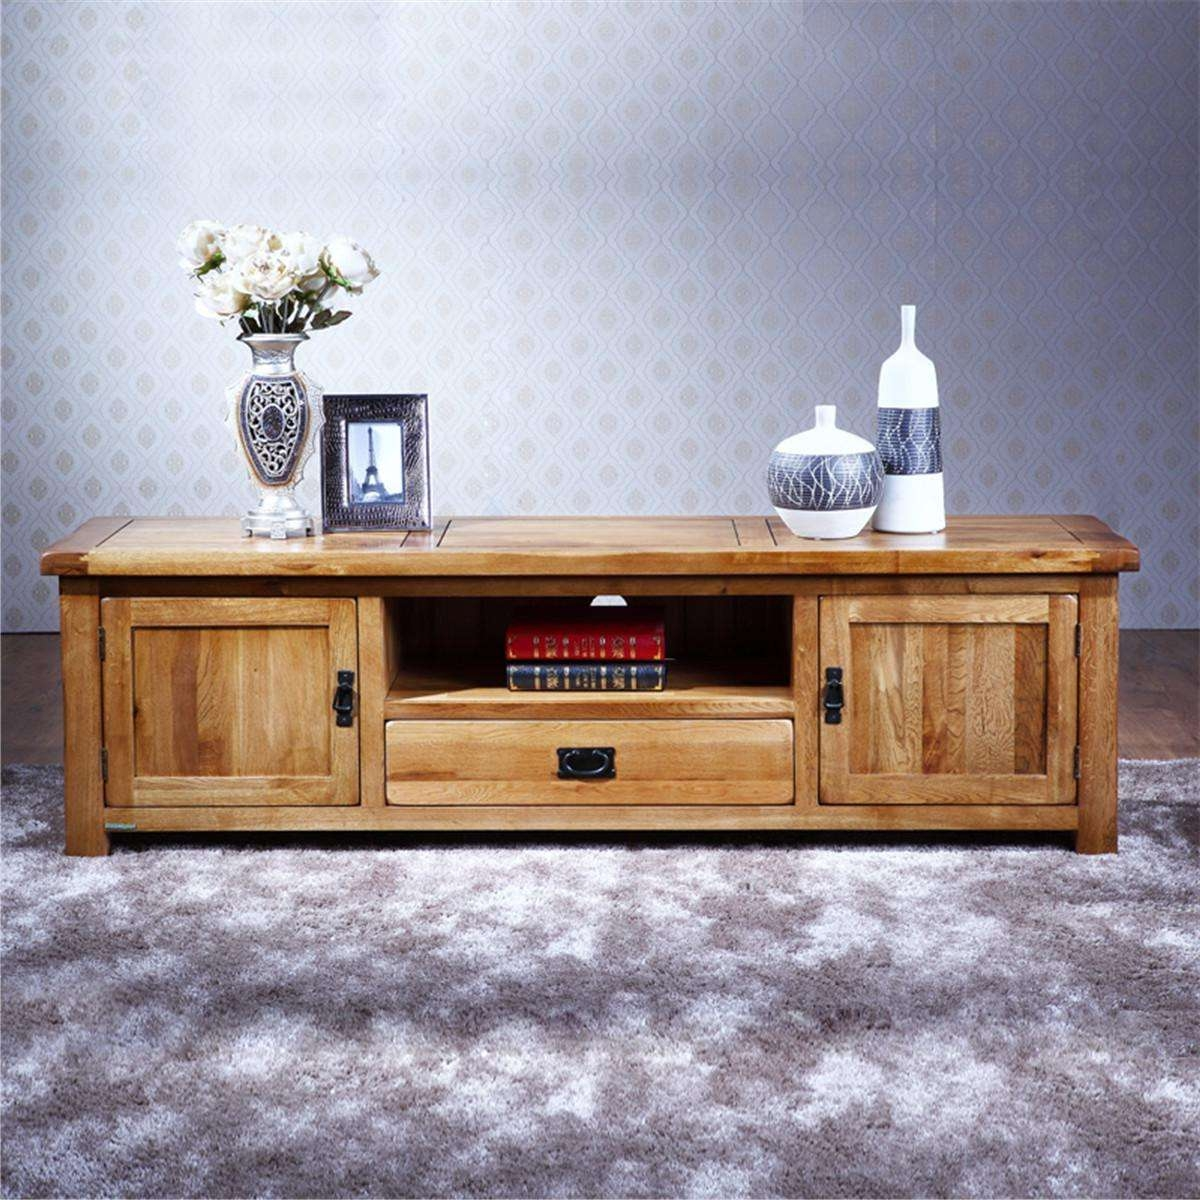 2018 100% Pure Solid Wood Tv Stand Oak Tv Stand Media Console For Wood Tv Stands (View 1 of 15)